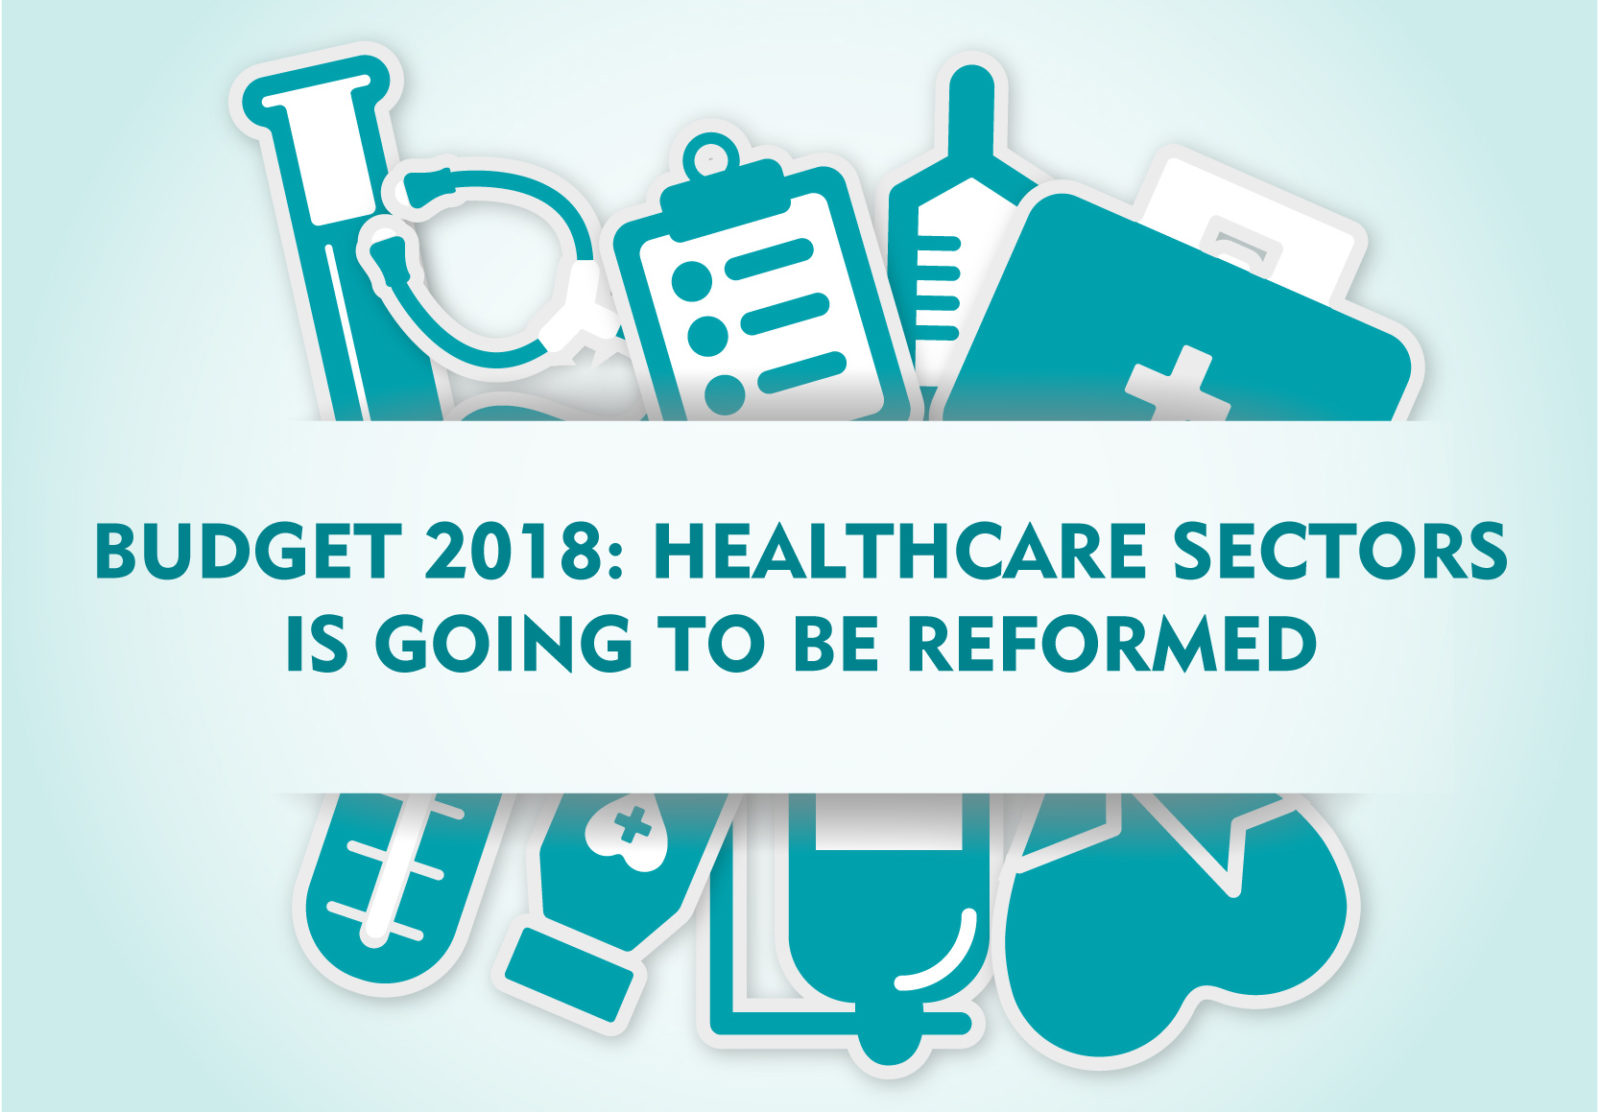 Budget 2018: Healthcare Sectors is Going to be Reformed in Upcoming Years All the Way